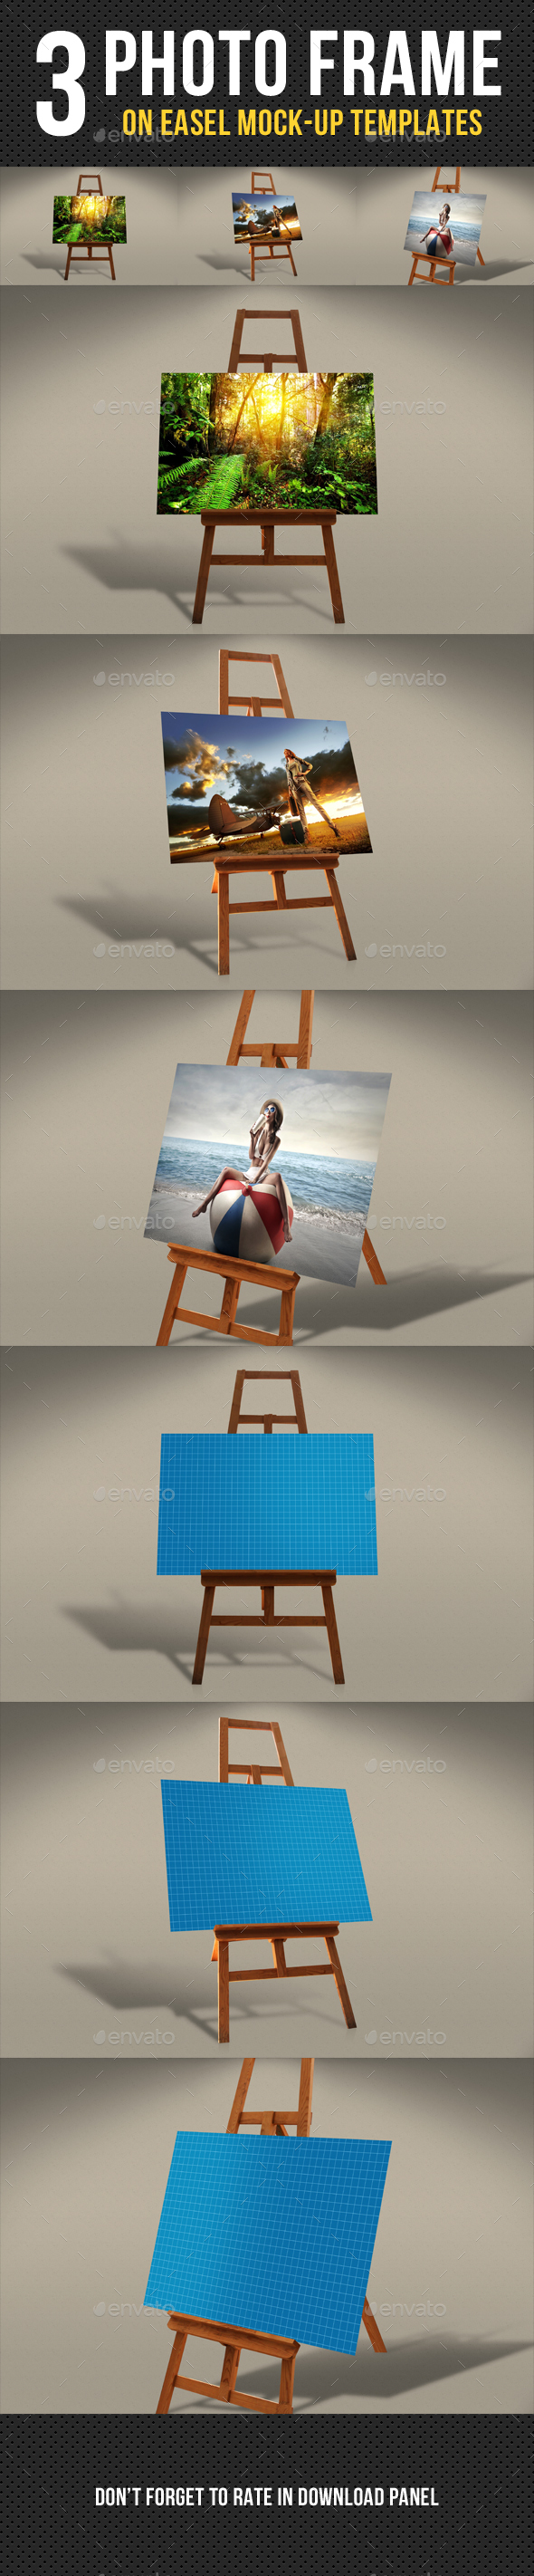 Photo Frame On Easel Mock-Up